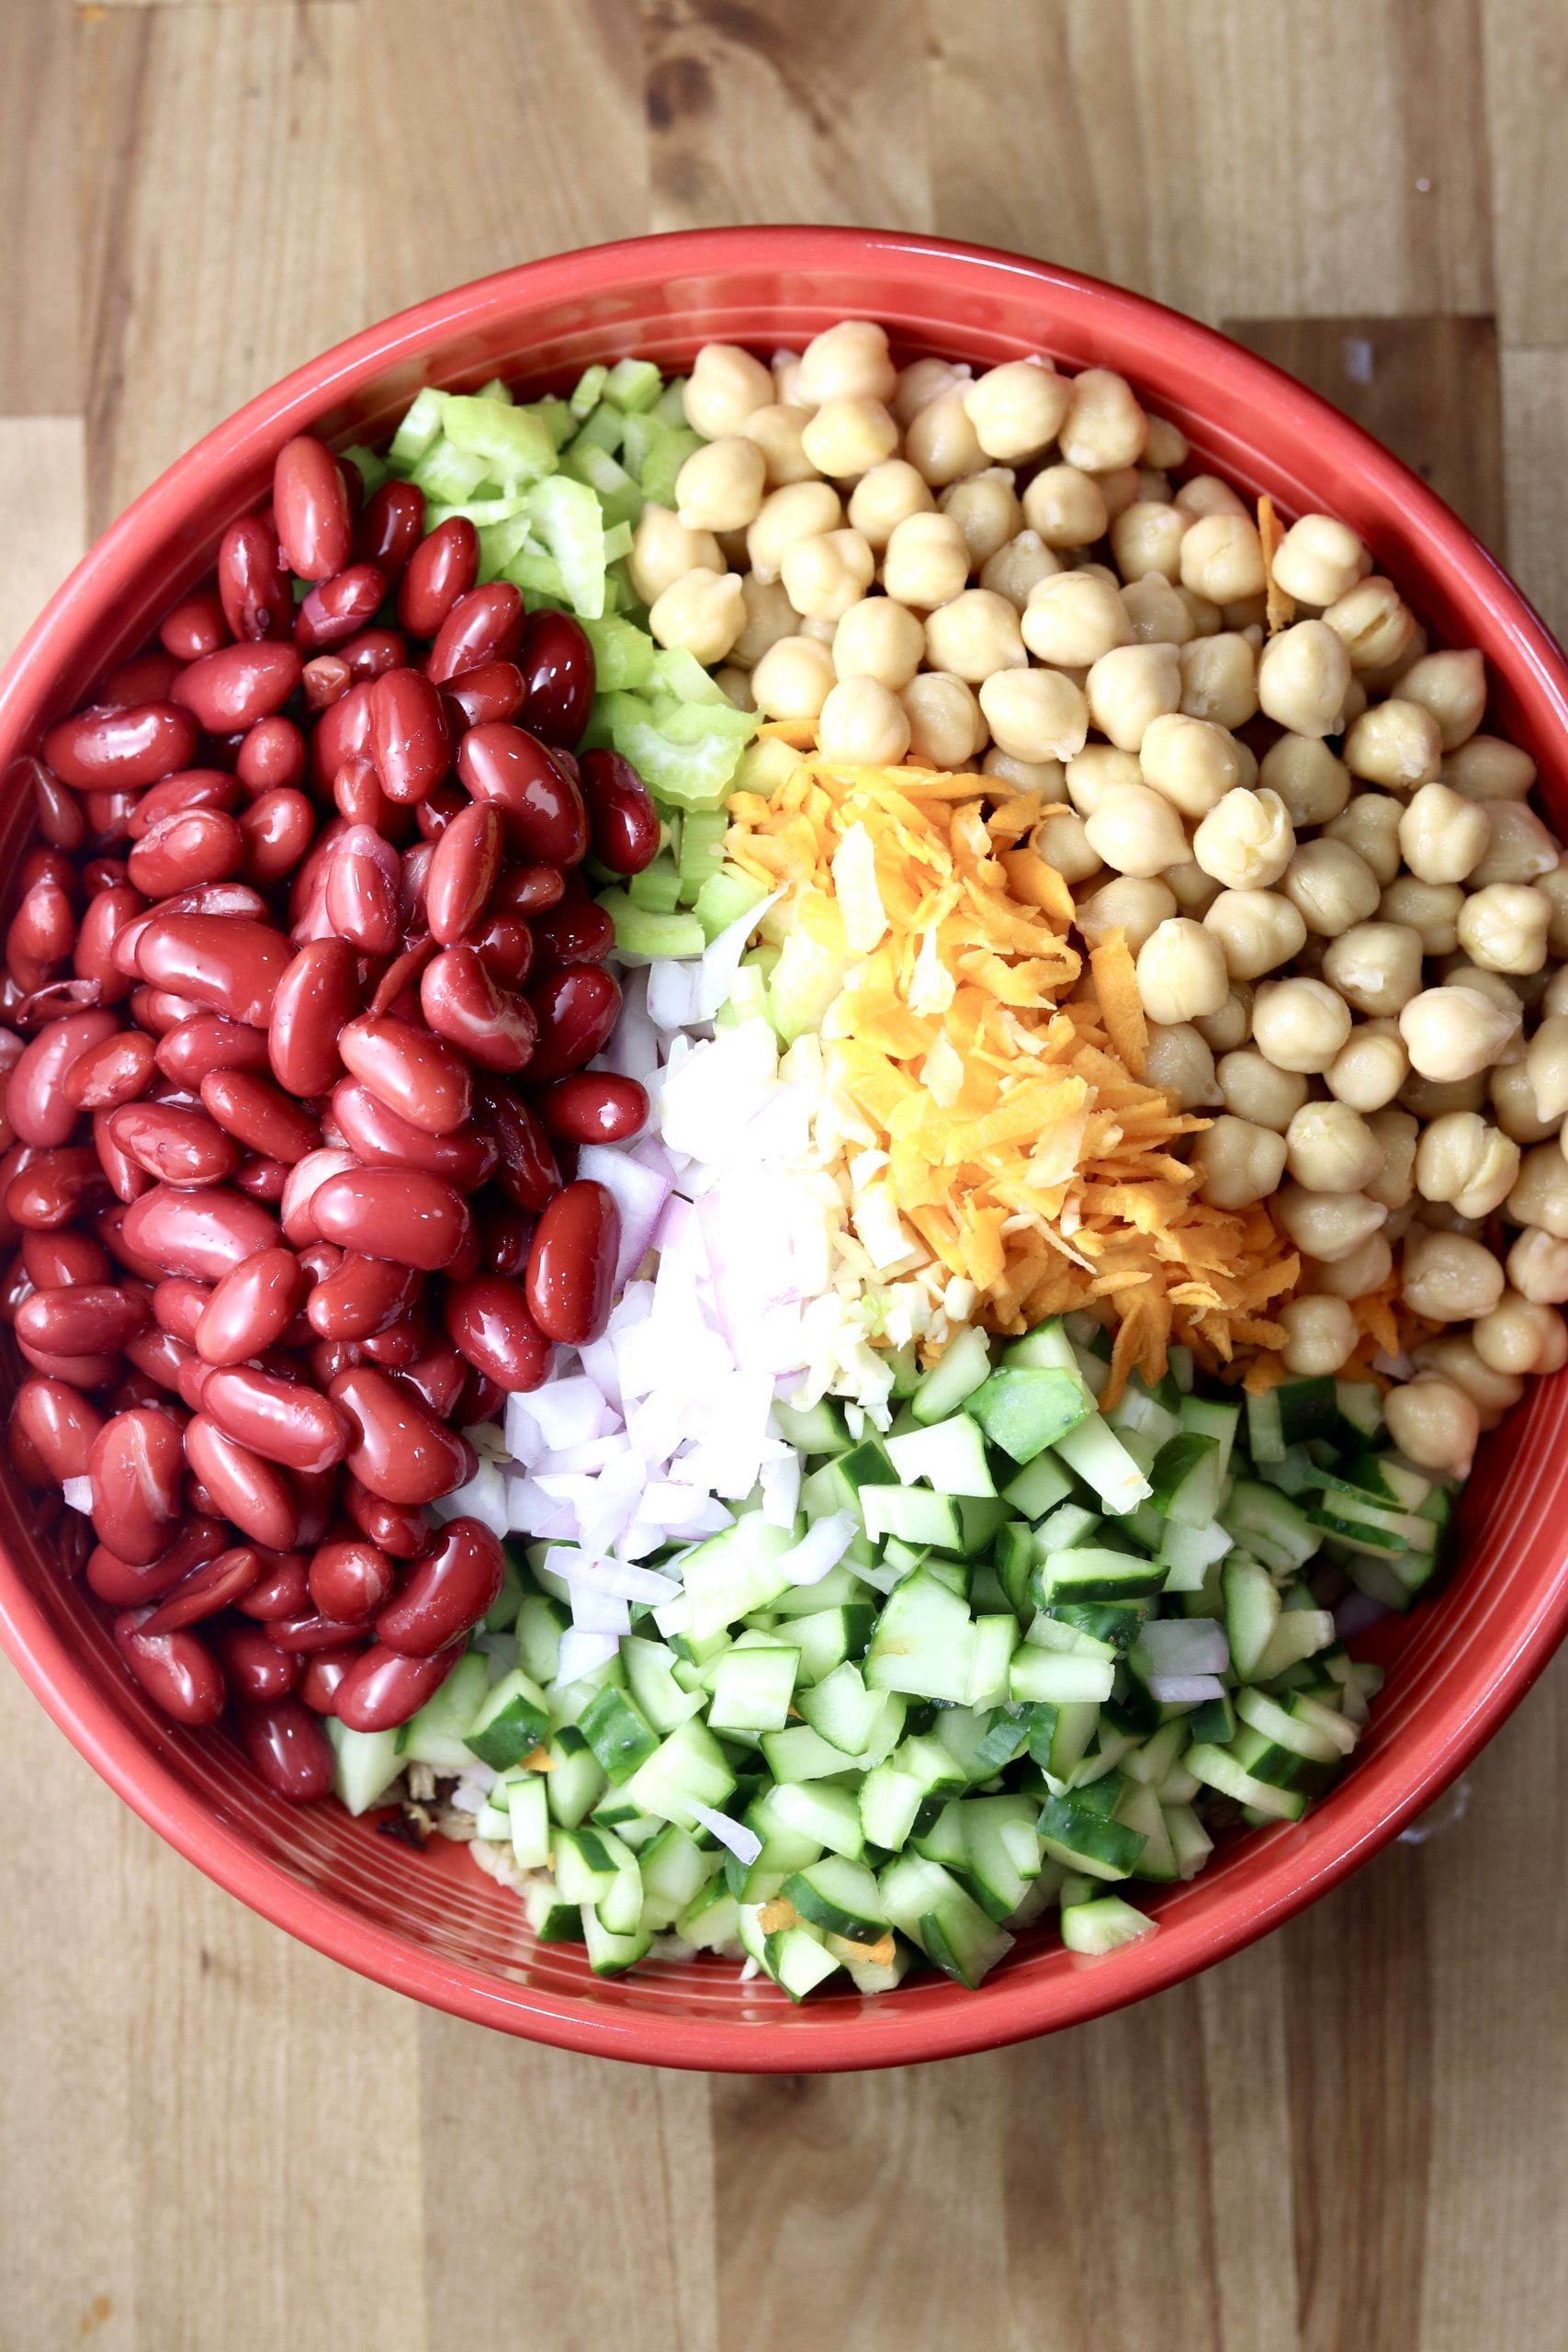 Kidney Beans, chickpeas, cucumbers, carrots, onions and celery in a red bowl